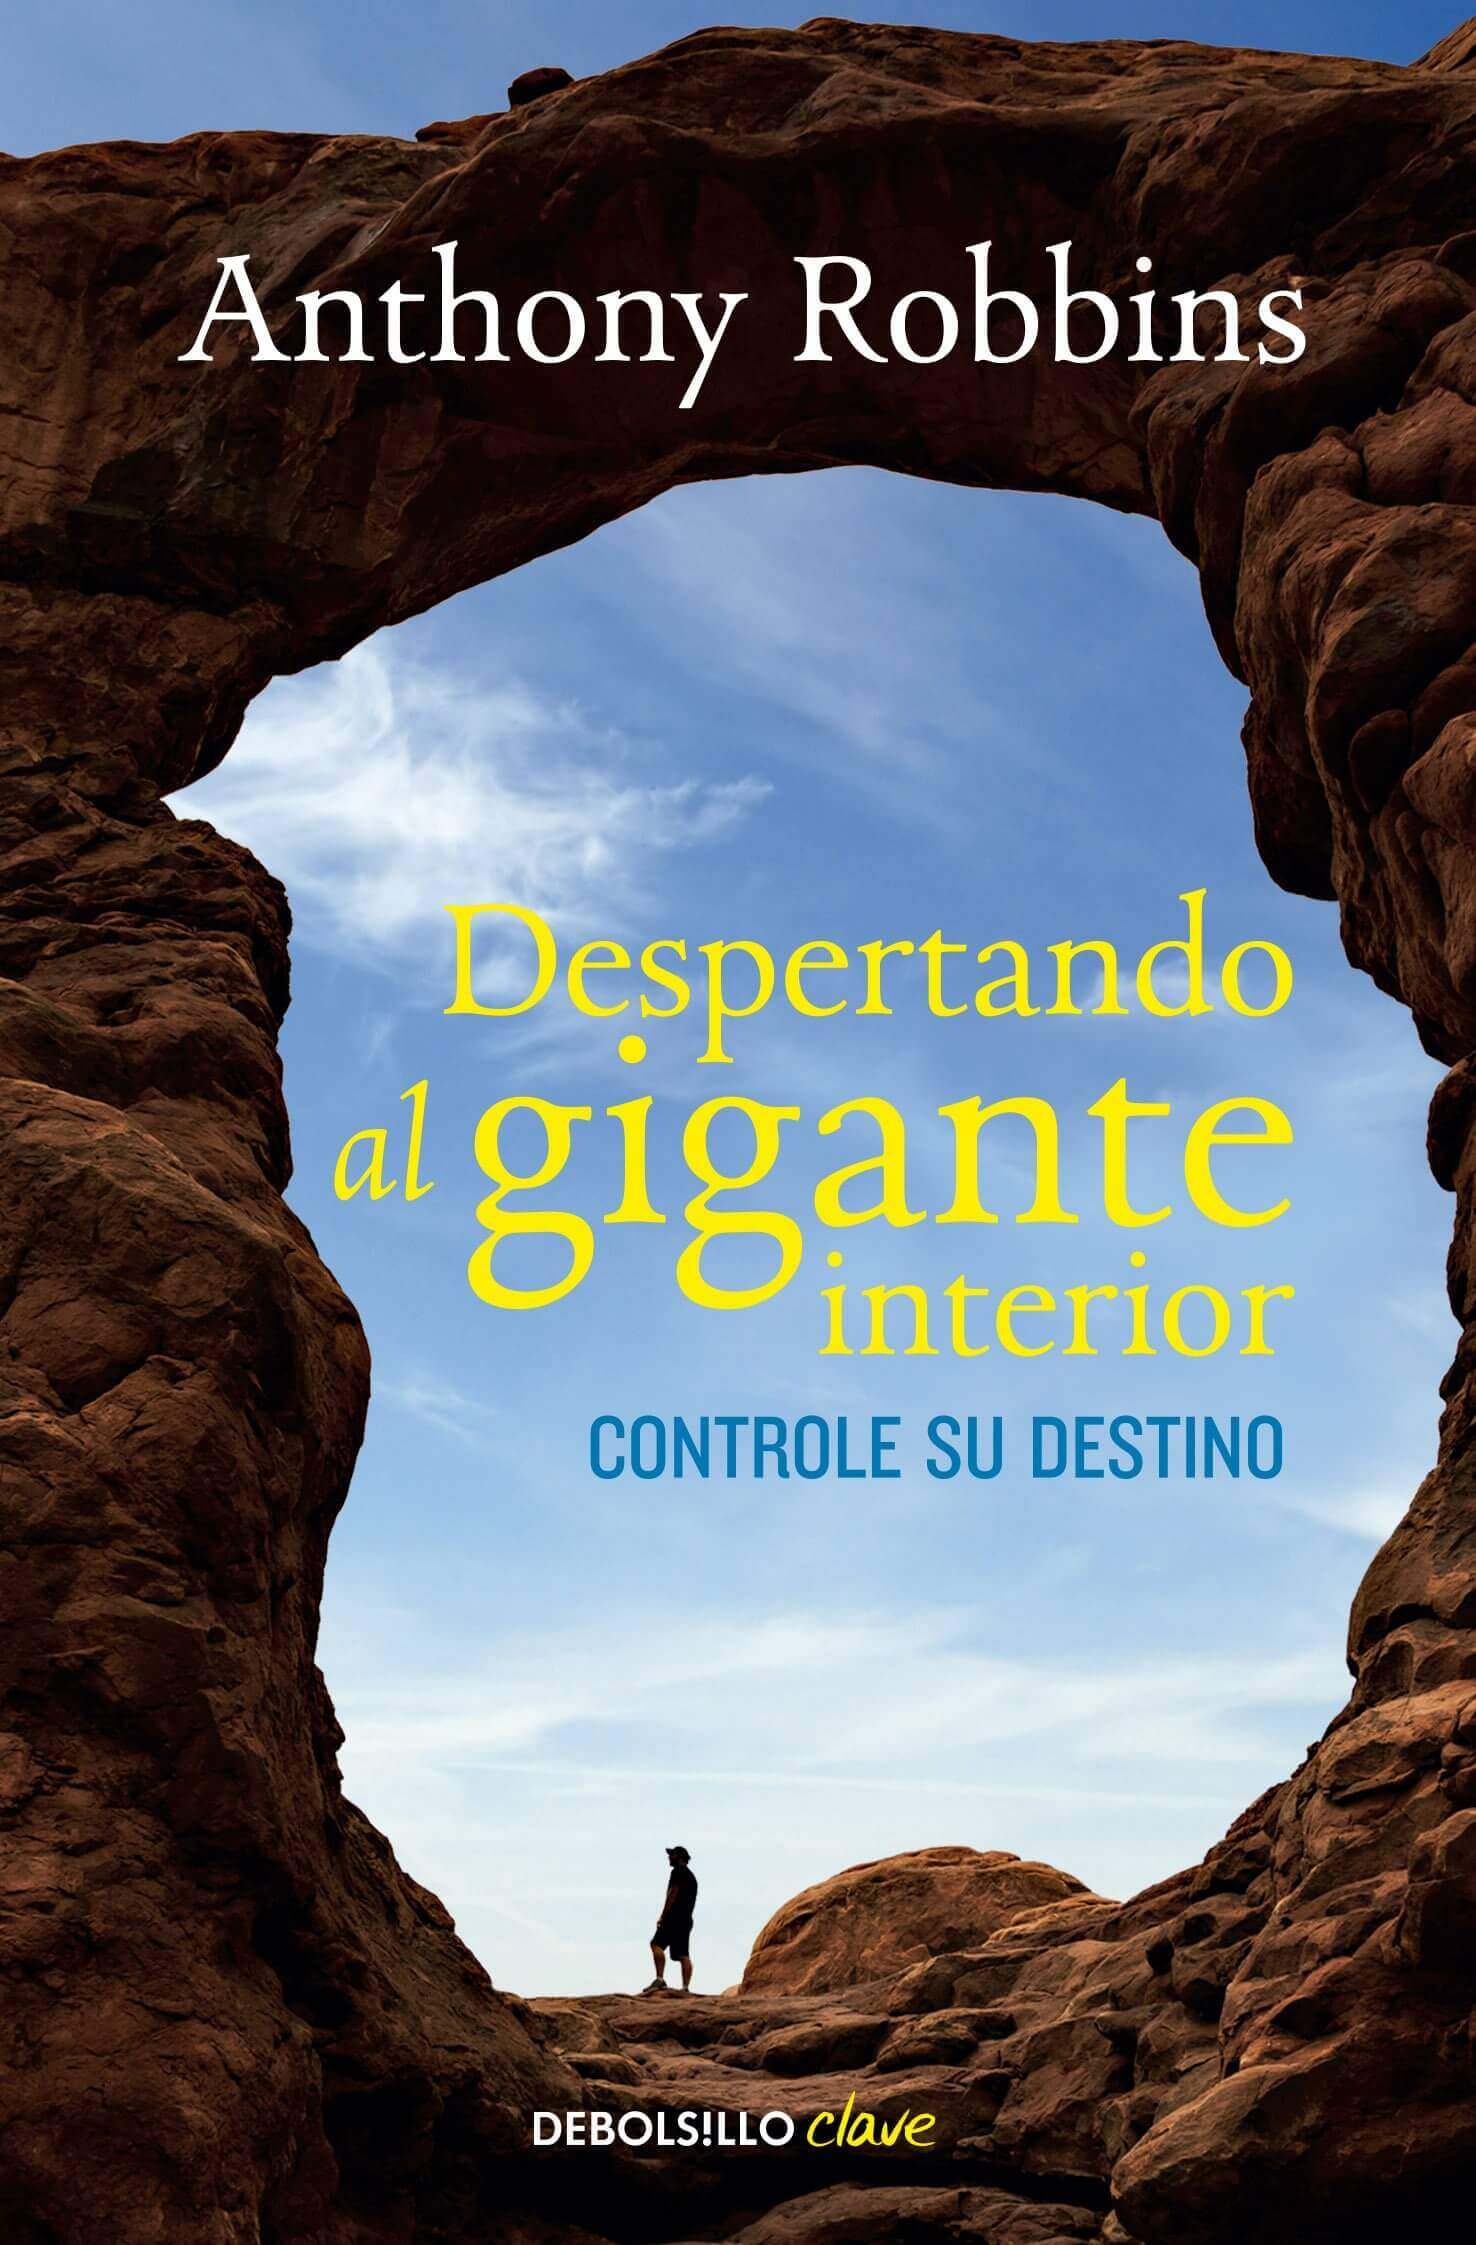 Amazon - Despertando al gigante Interior de Tony Robbins